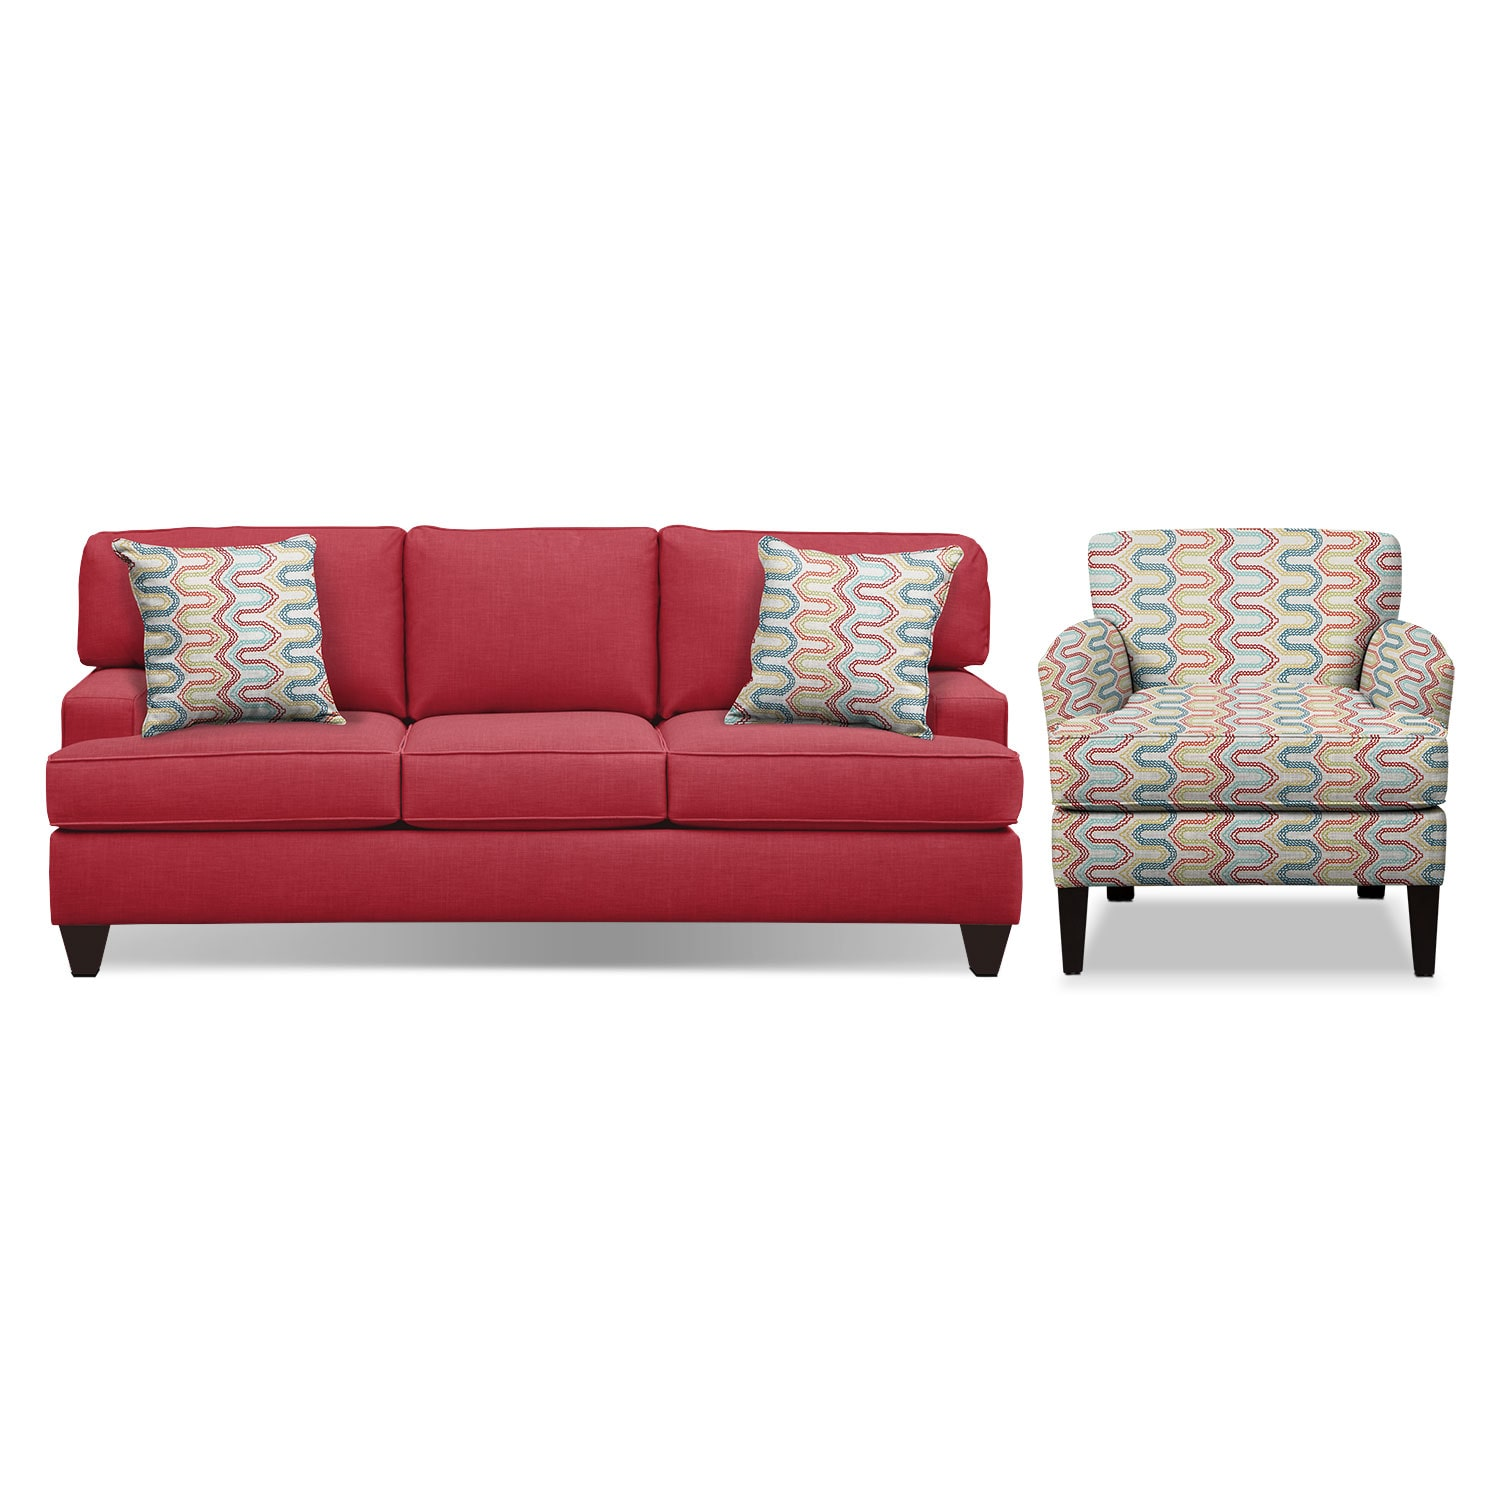 "Conner Red 87"" Sofa and Accent Chair Set"